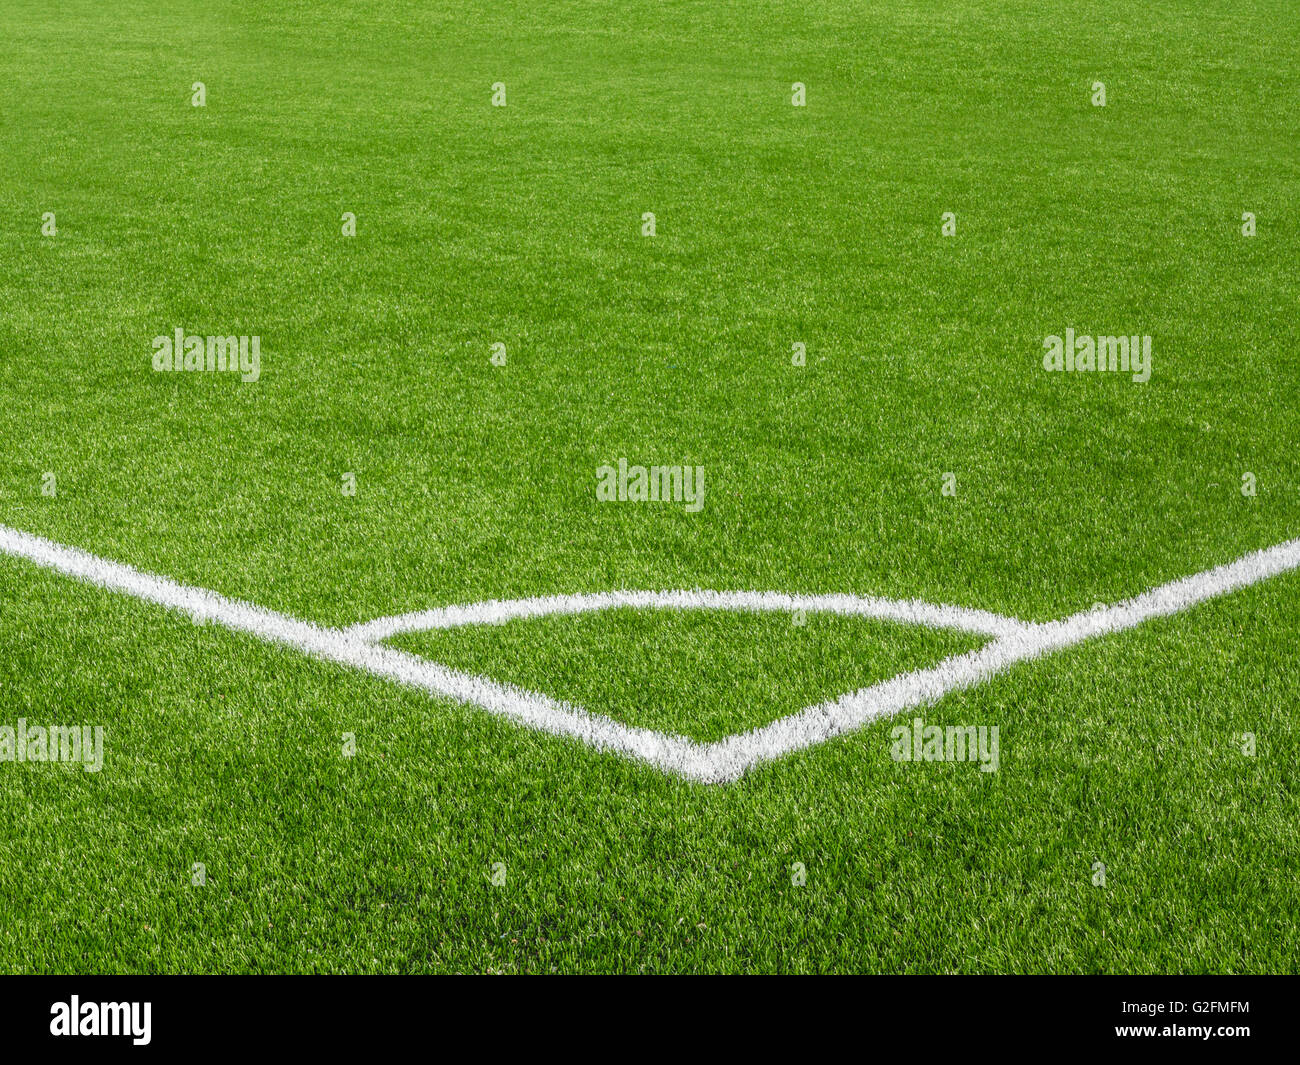 A corner of a football pitch - Stock Image